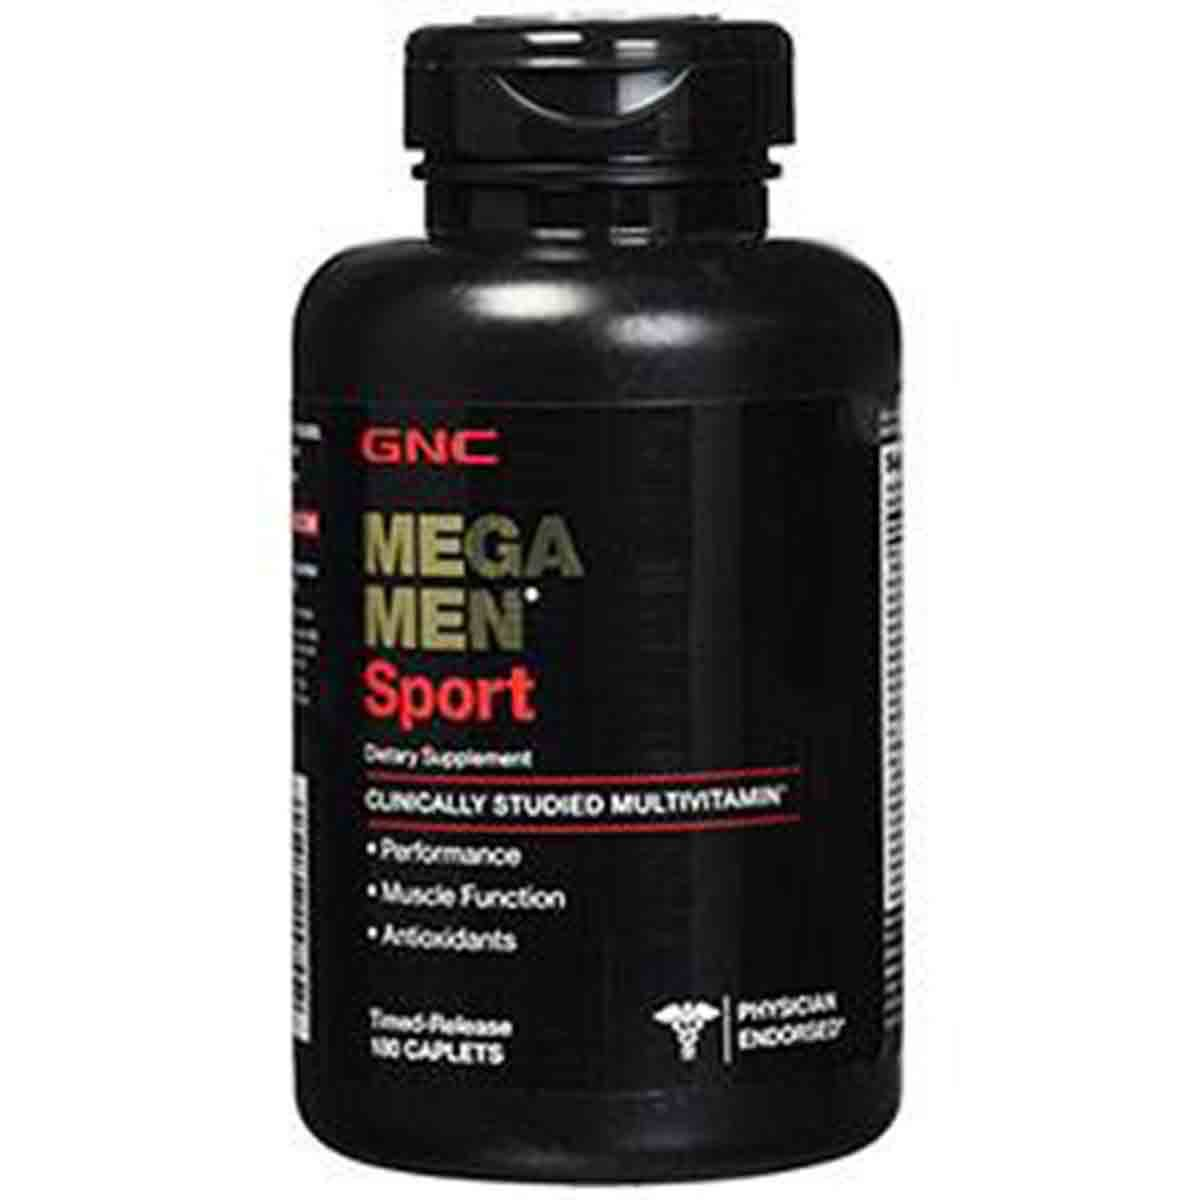 GNC Mega Men Sport